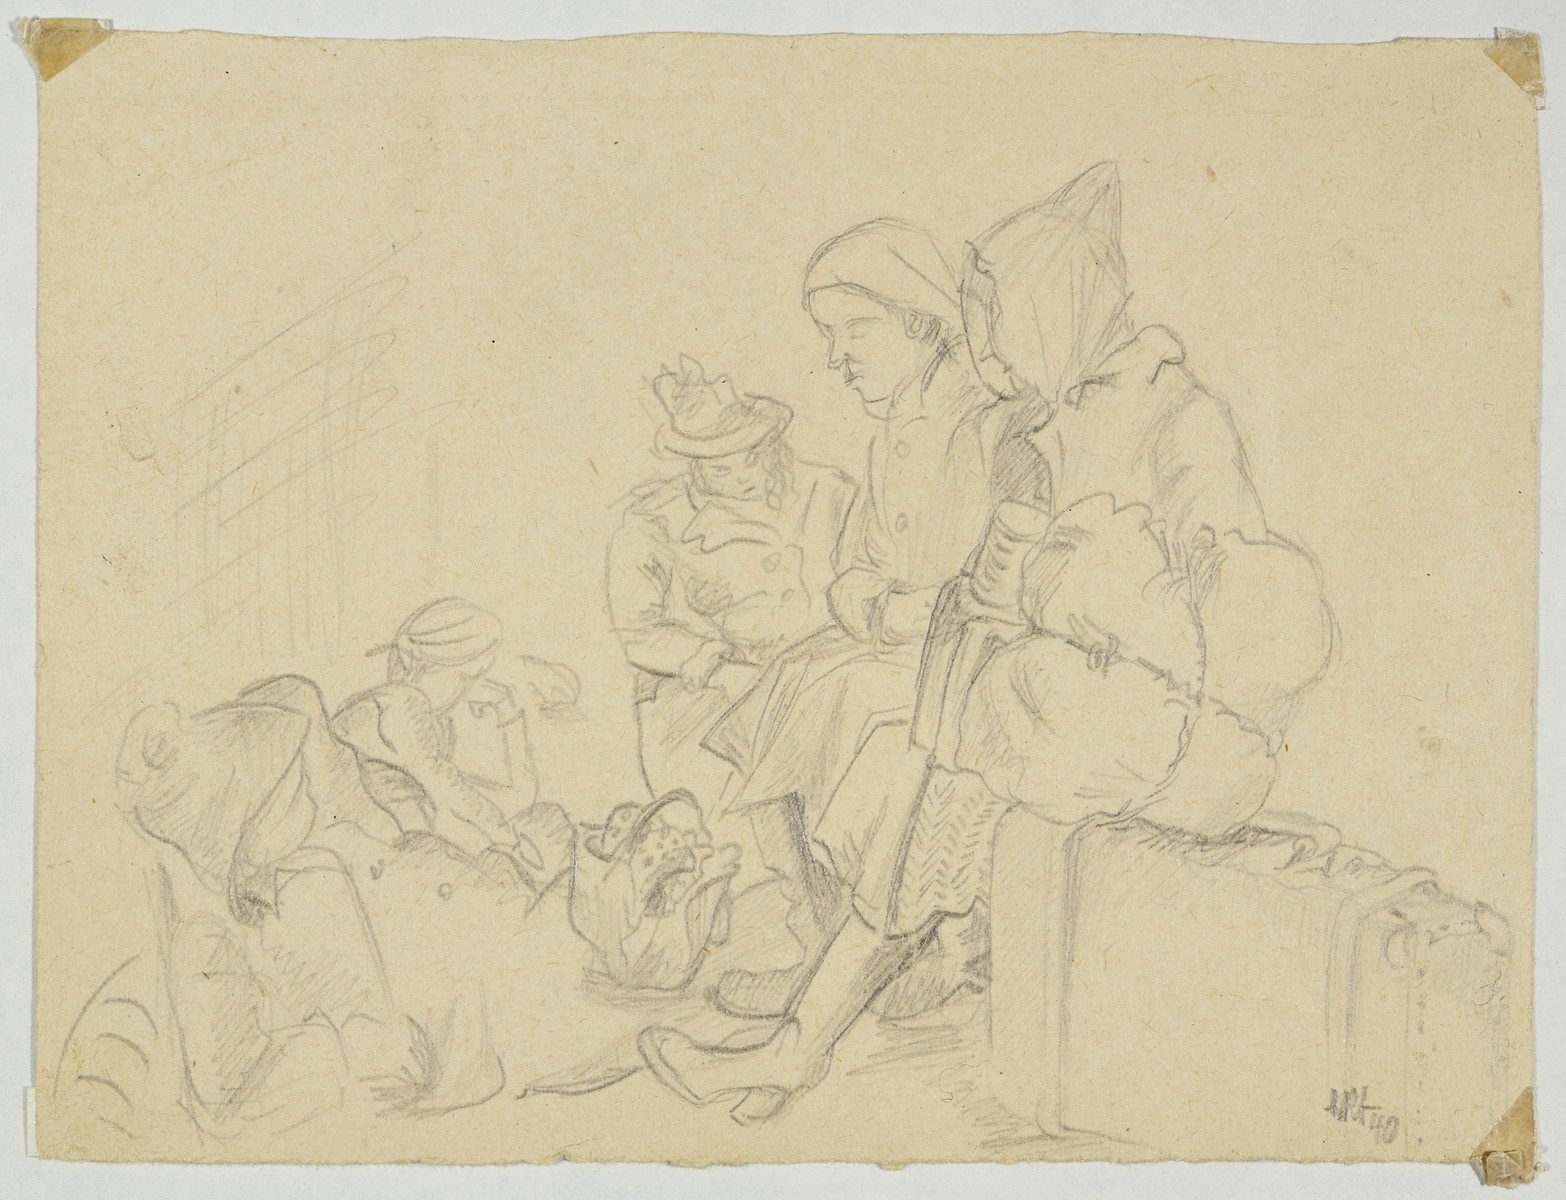 """""""Waiting for Deportation (Version I)"""" by Lili Andrieux.  Sketch of women sitting on suitcases and on the ground with bags and a basket."""